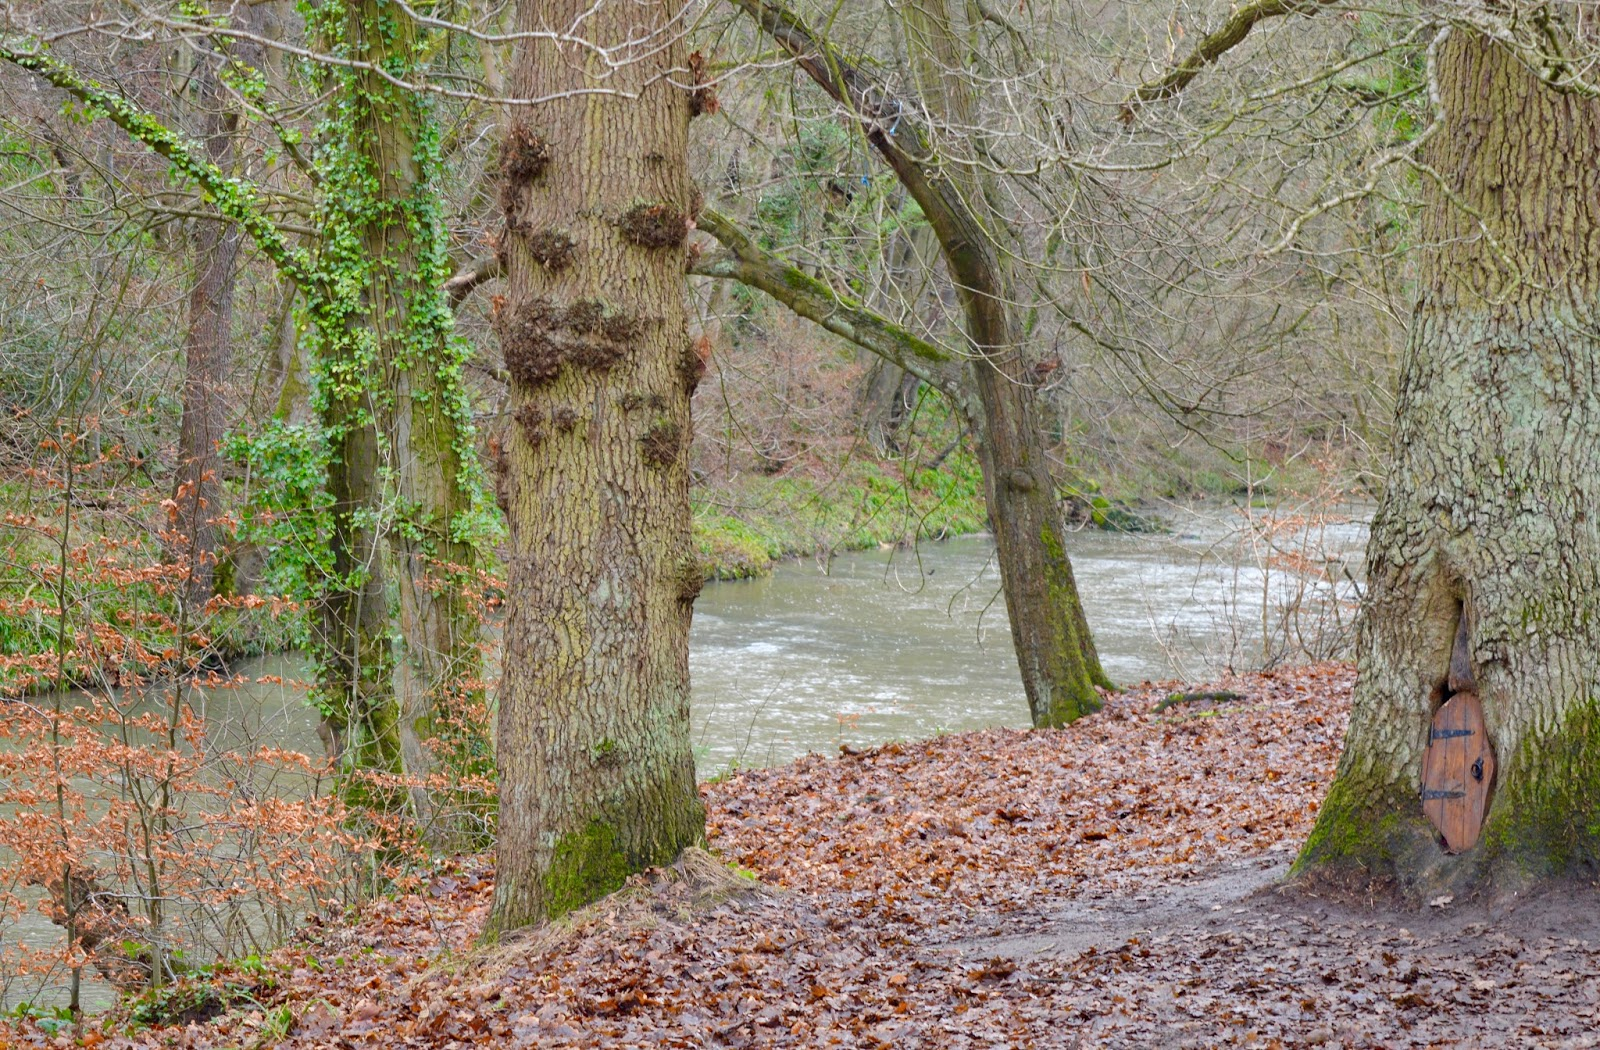 Our Visit to Plessey Woods - A FREE day out in Northumberland. It was very muddy and the perfect chance for Harry to put his GORE-TEX shoes through their paces - river walk